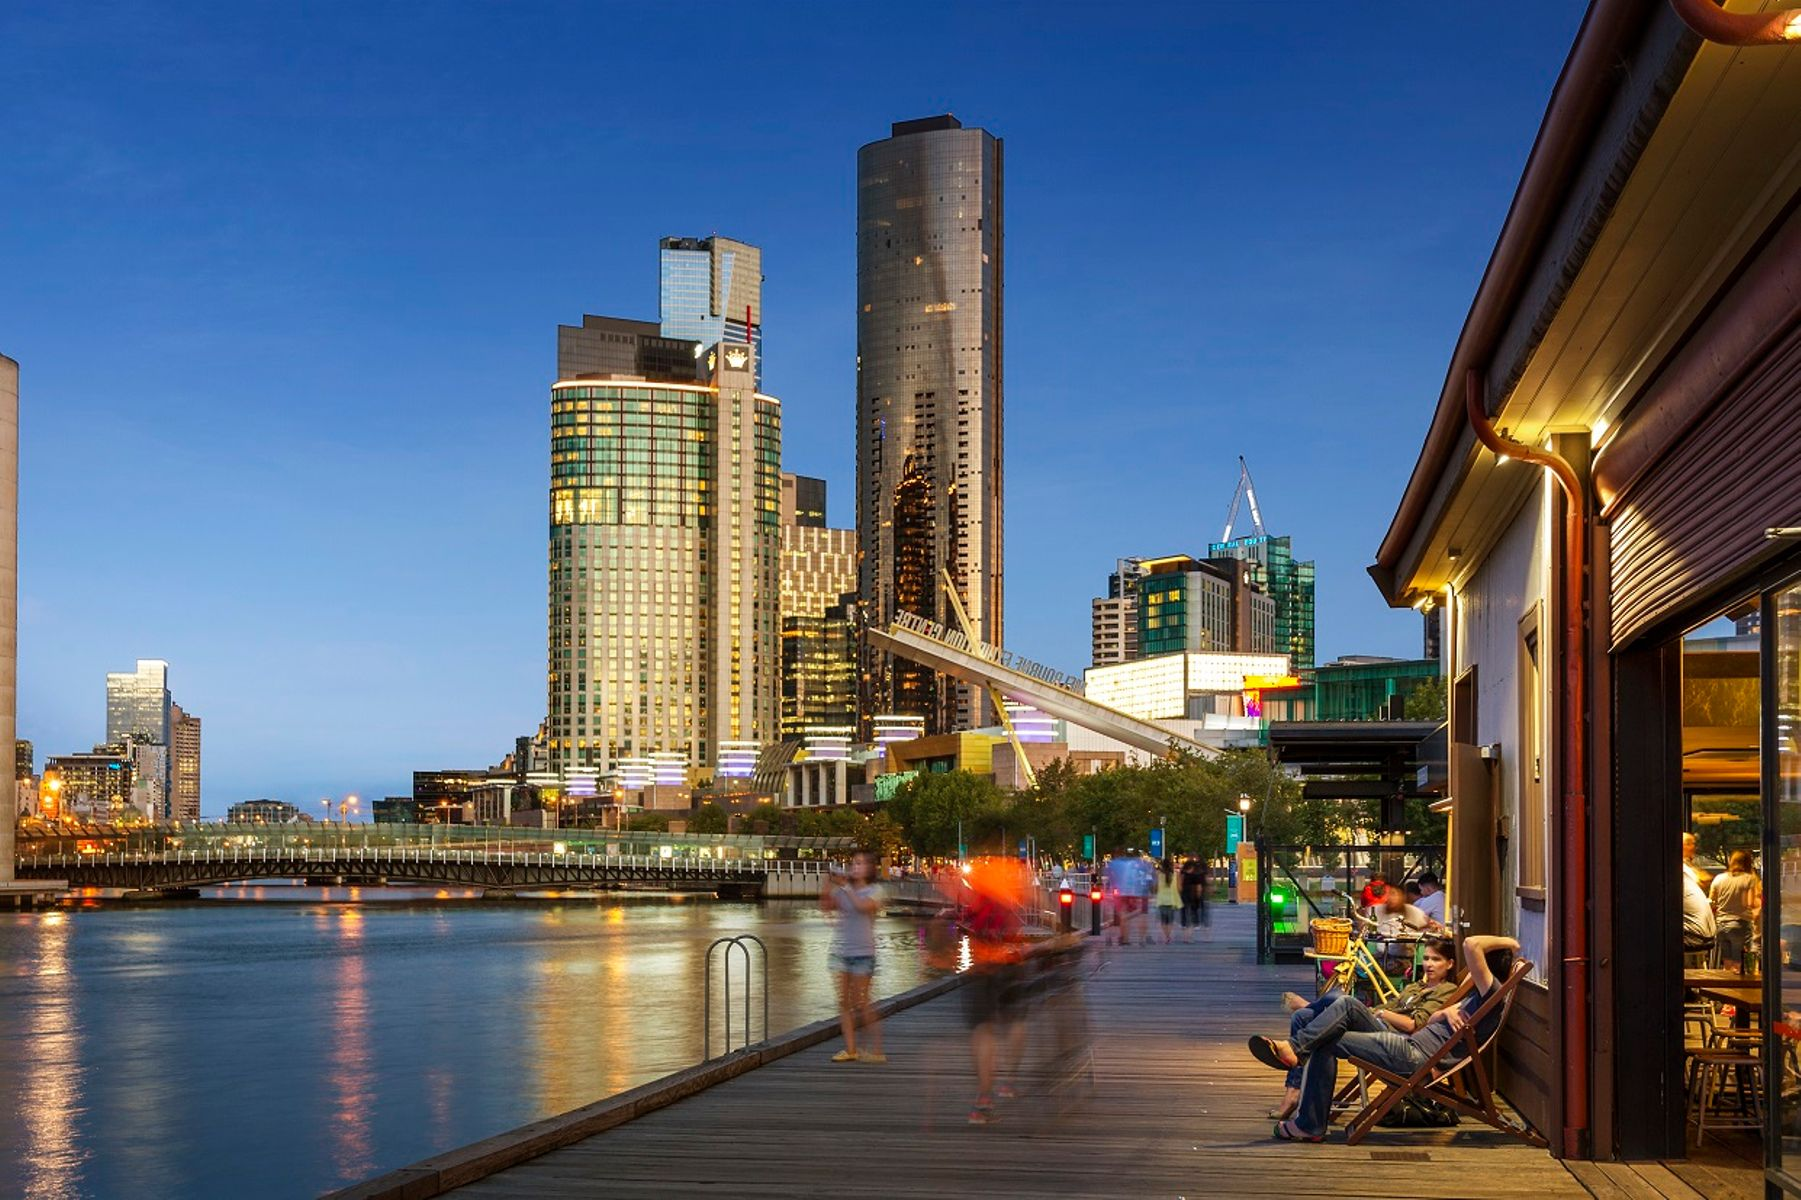 South Wharf & Crown Casino